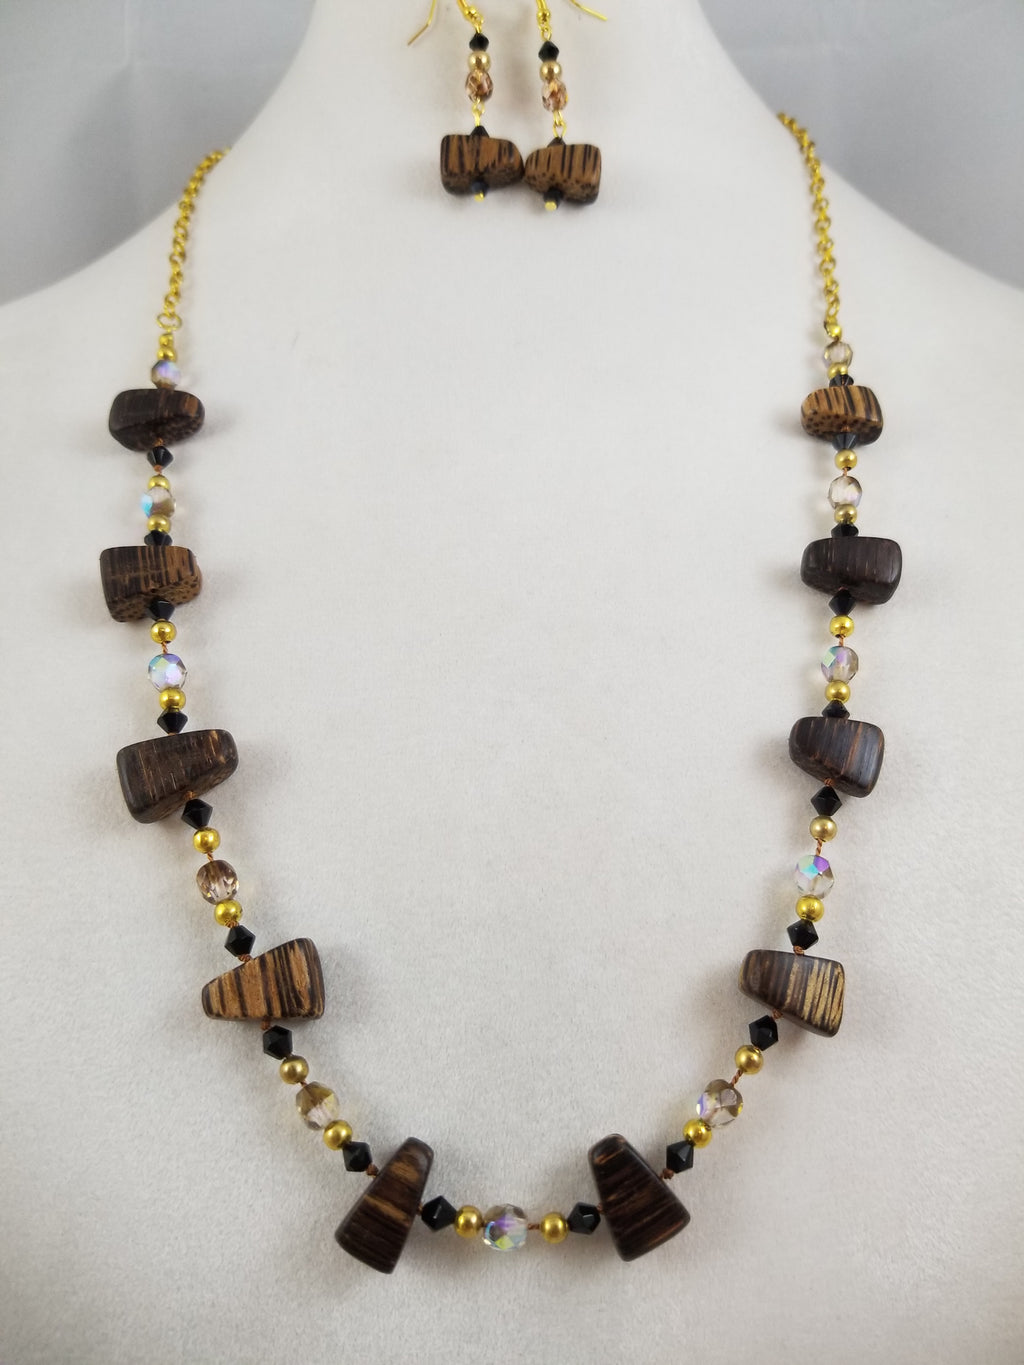 Zebra Wood Necklace with Earrings